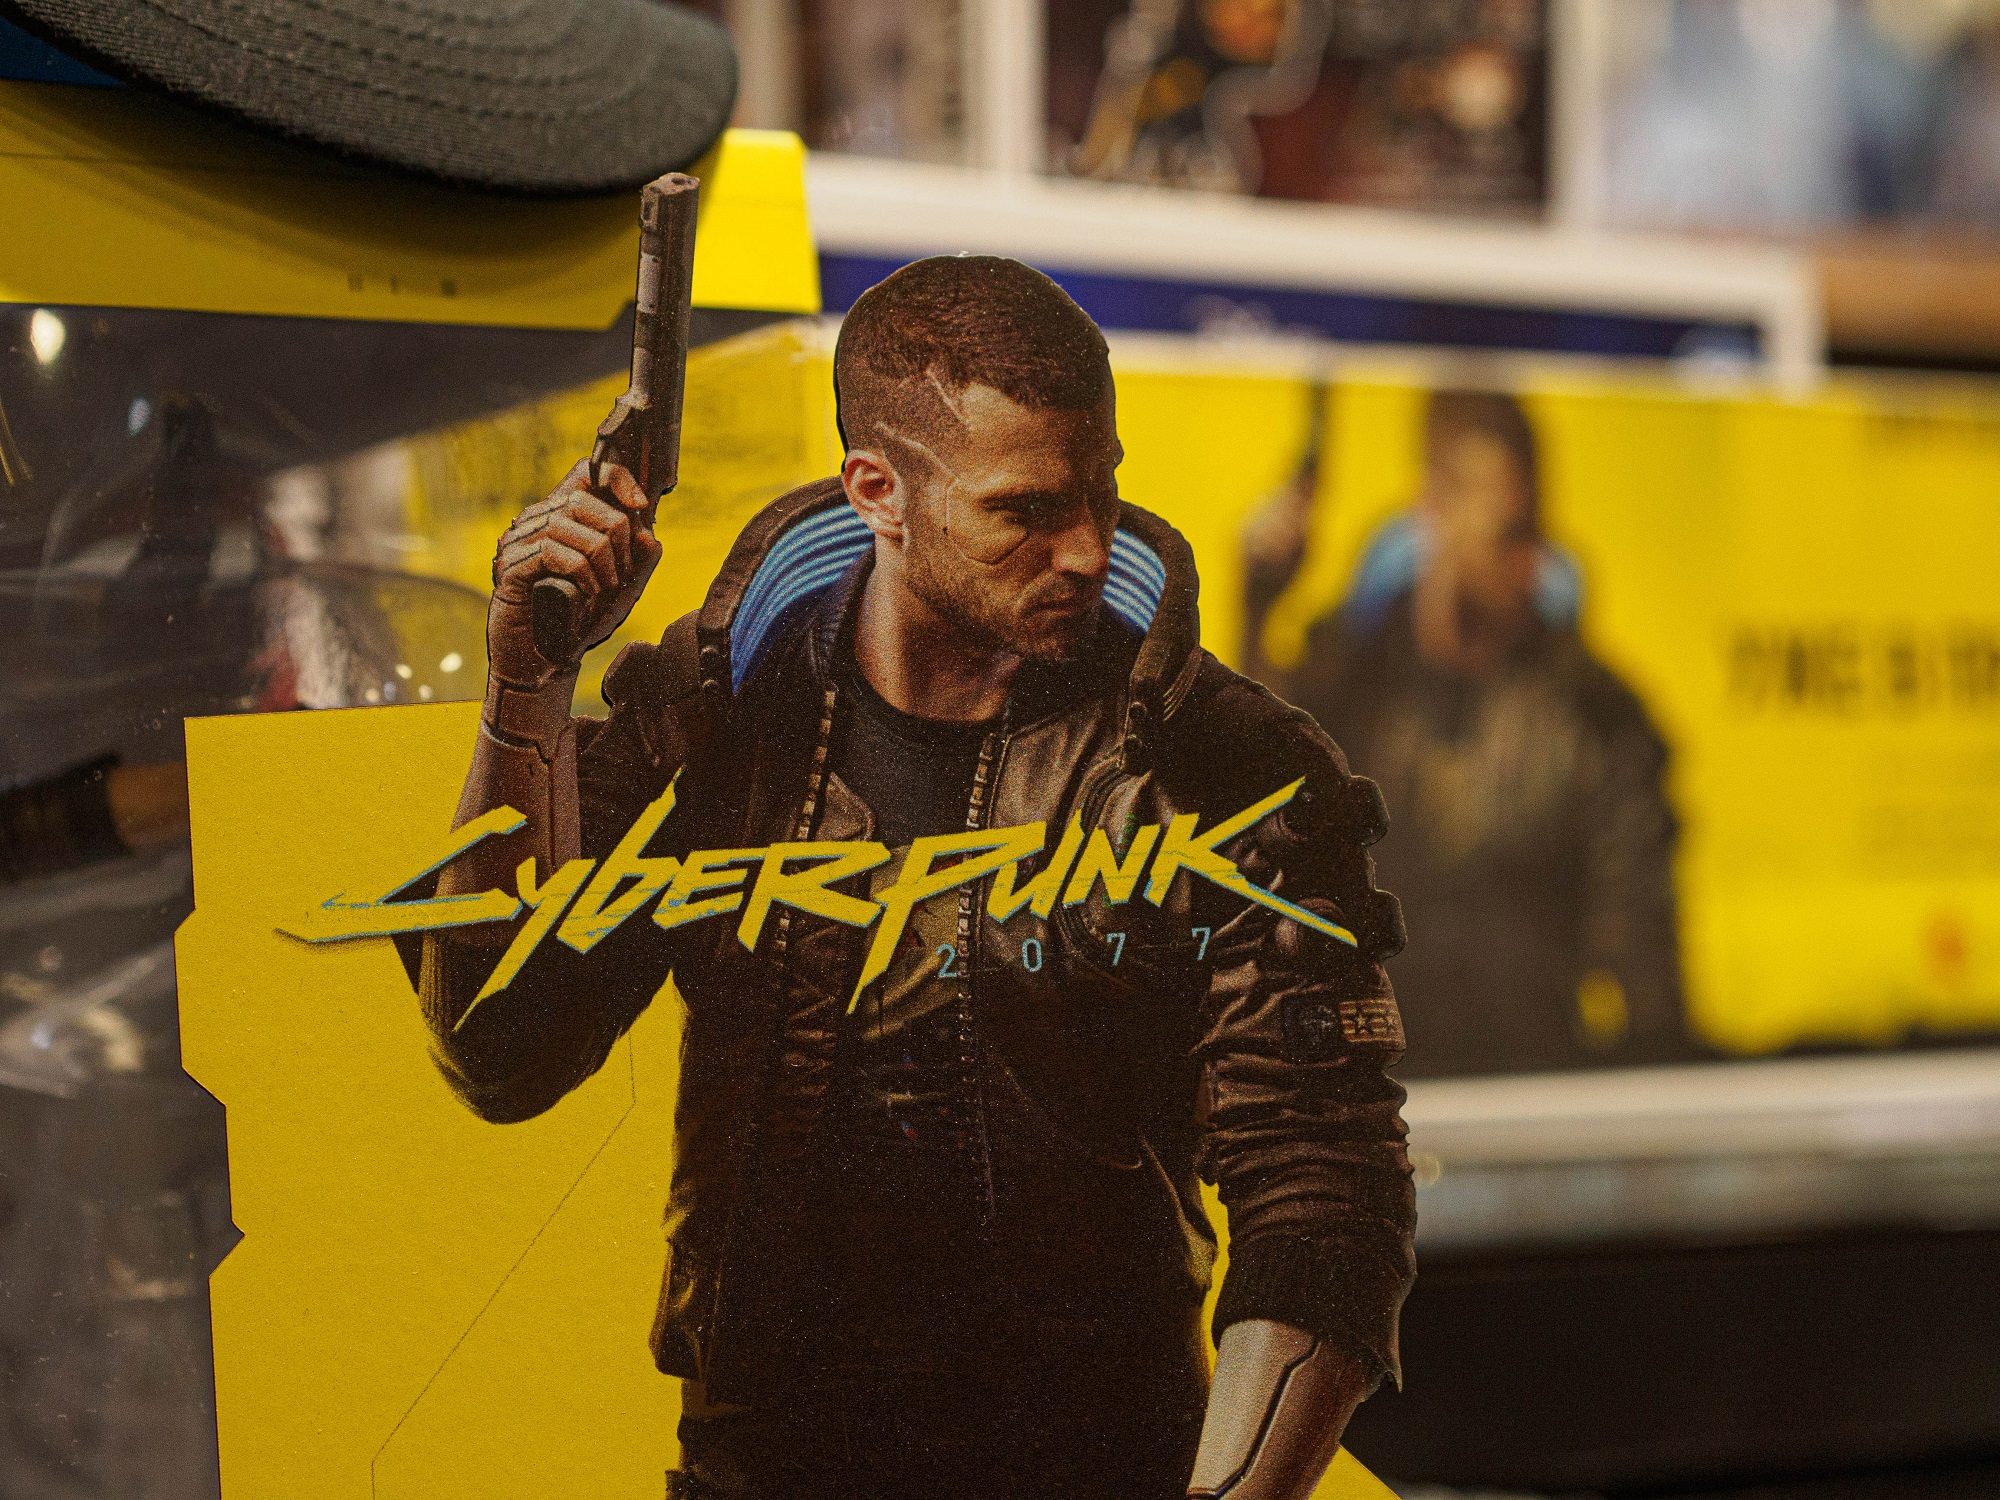 Promotional materials Cyberpunk 2077 by CD Projekt Red